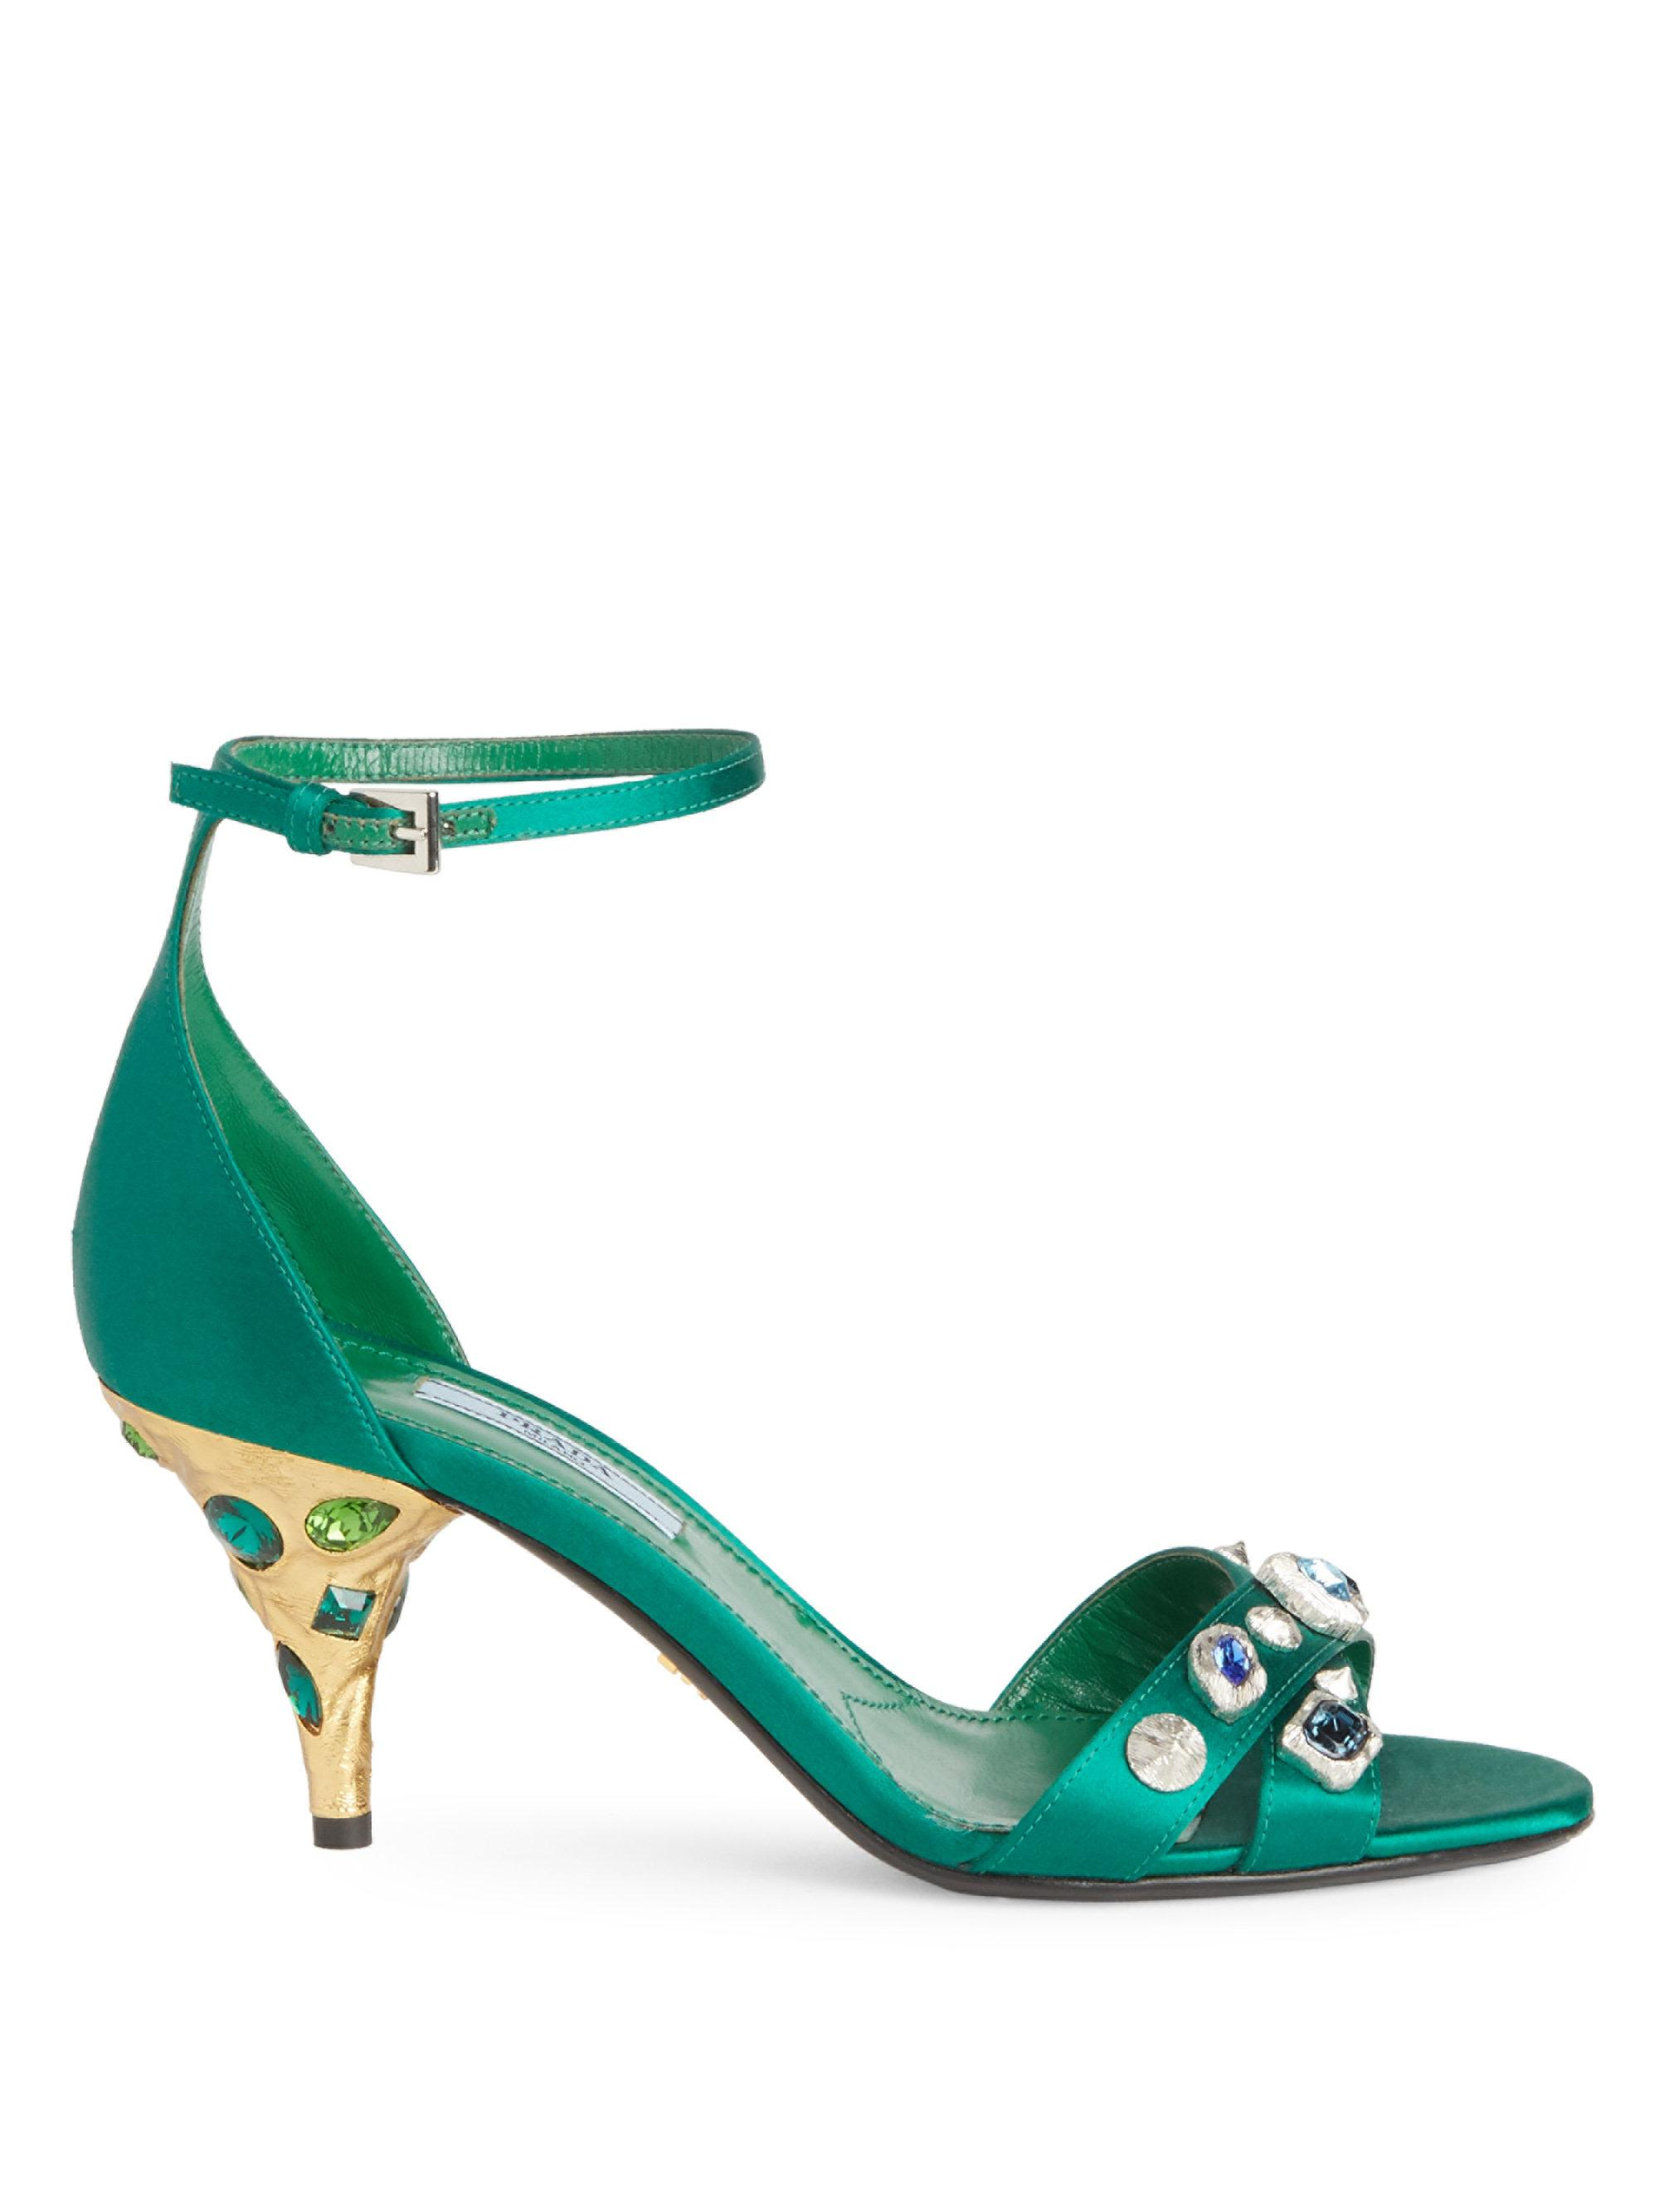 4c1c03f2b346 Prada Jeweled Satin Ankle-strap Sandals in Green - Lyst